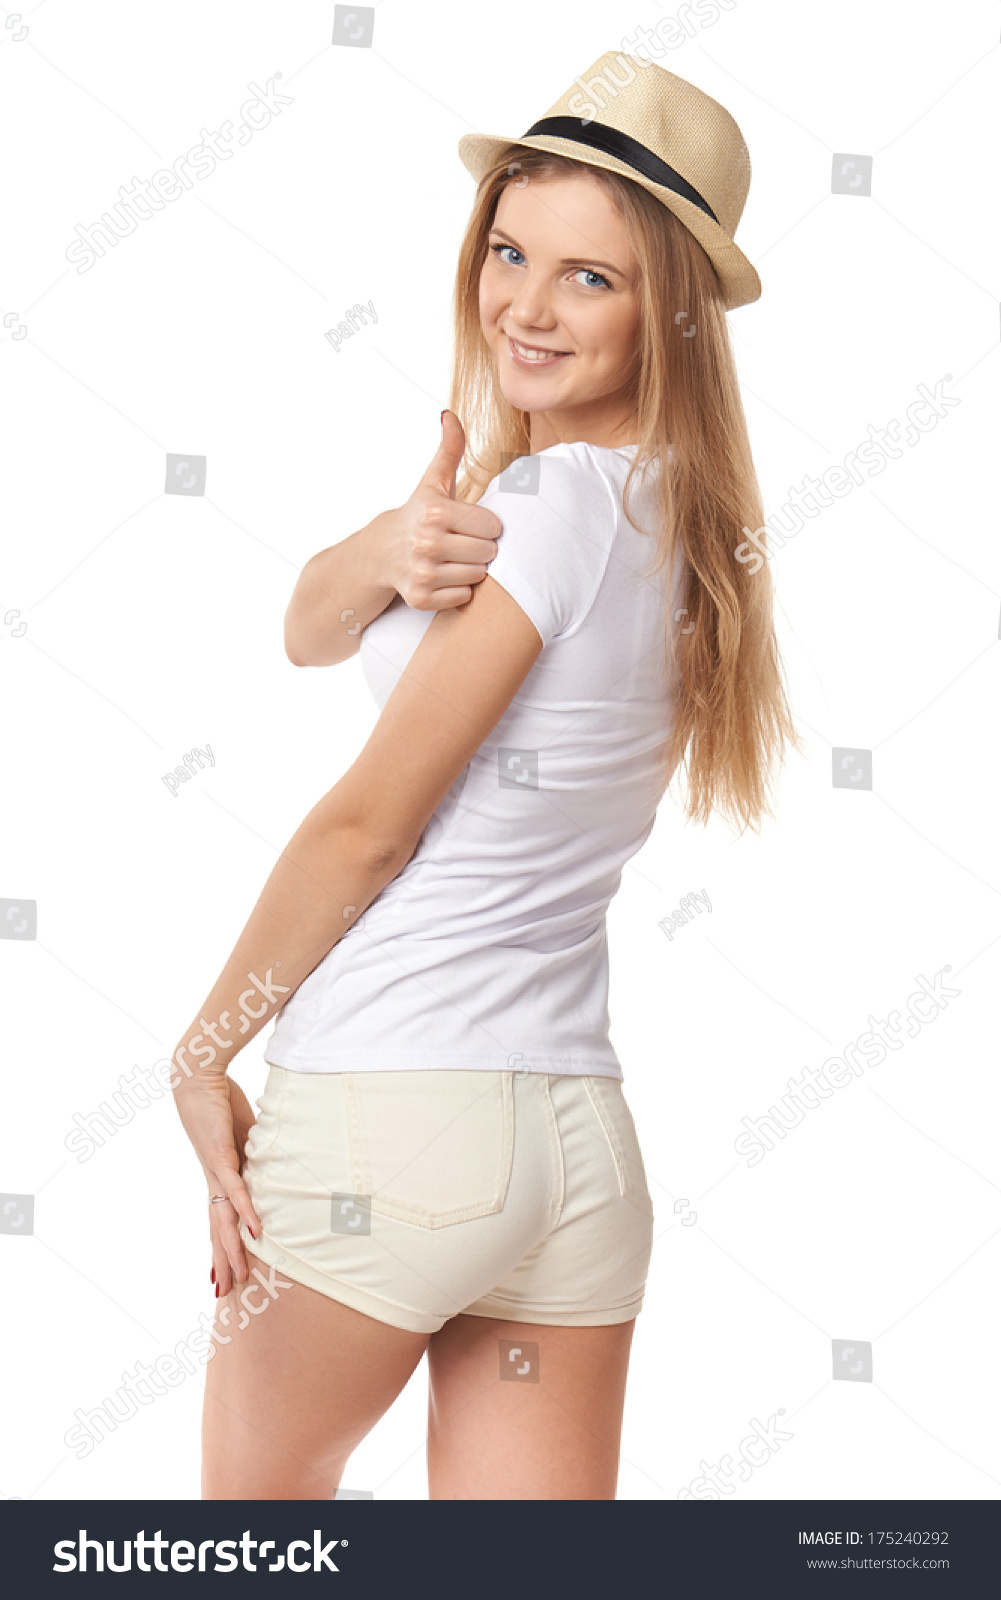 Teenage Caucasian Girl15 Years Old Sitting Outdoors: Happy Smiling Success Teen Girl White Stock Photo